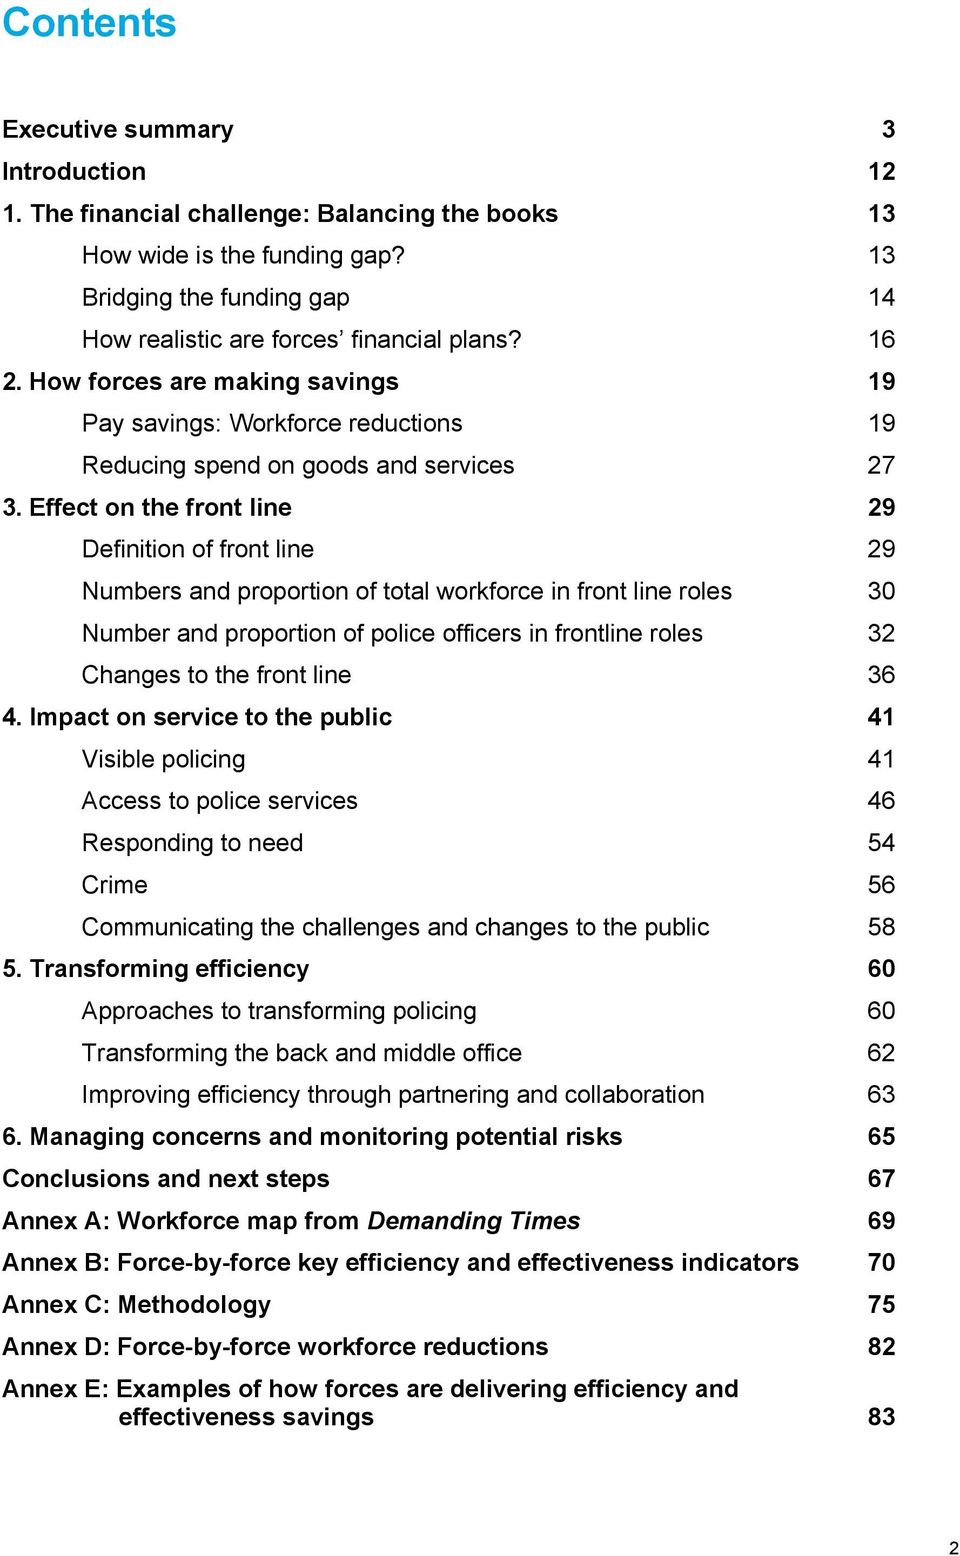 Effect on the front line 29 Definition of front line 29 Numbers and proportion of total workforce in front line roles 30 Number and proportion of police officers in frontline roles 32 Changes to the